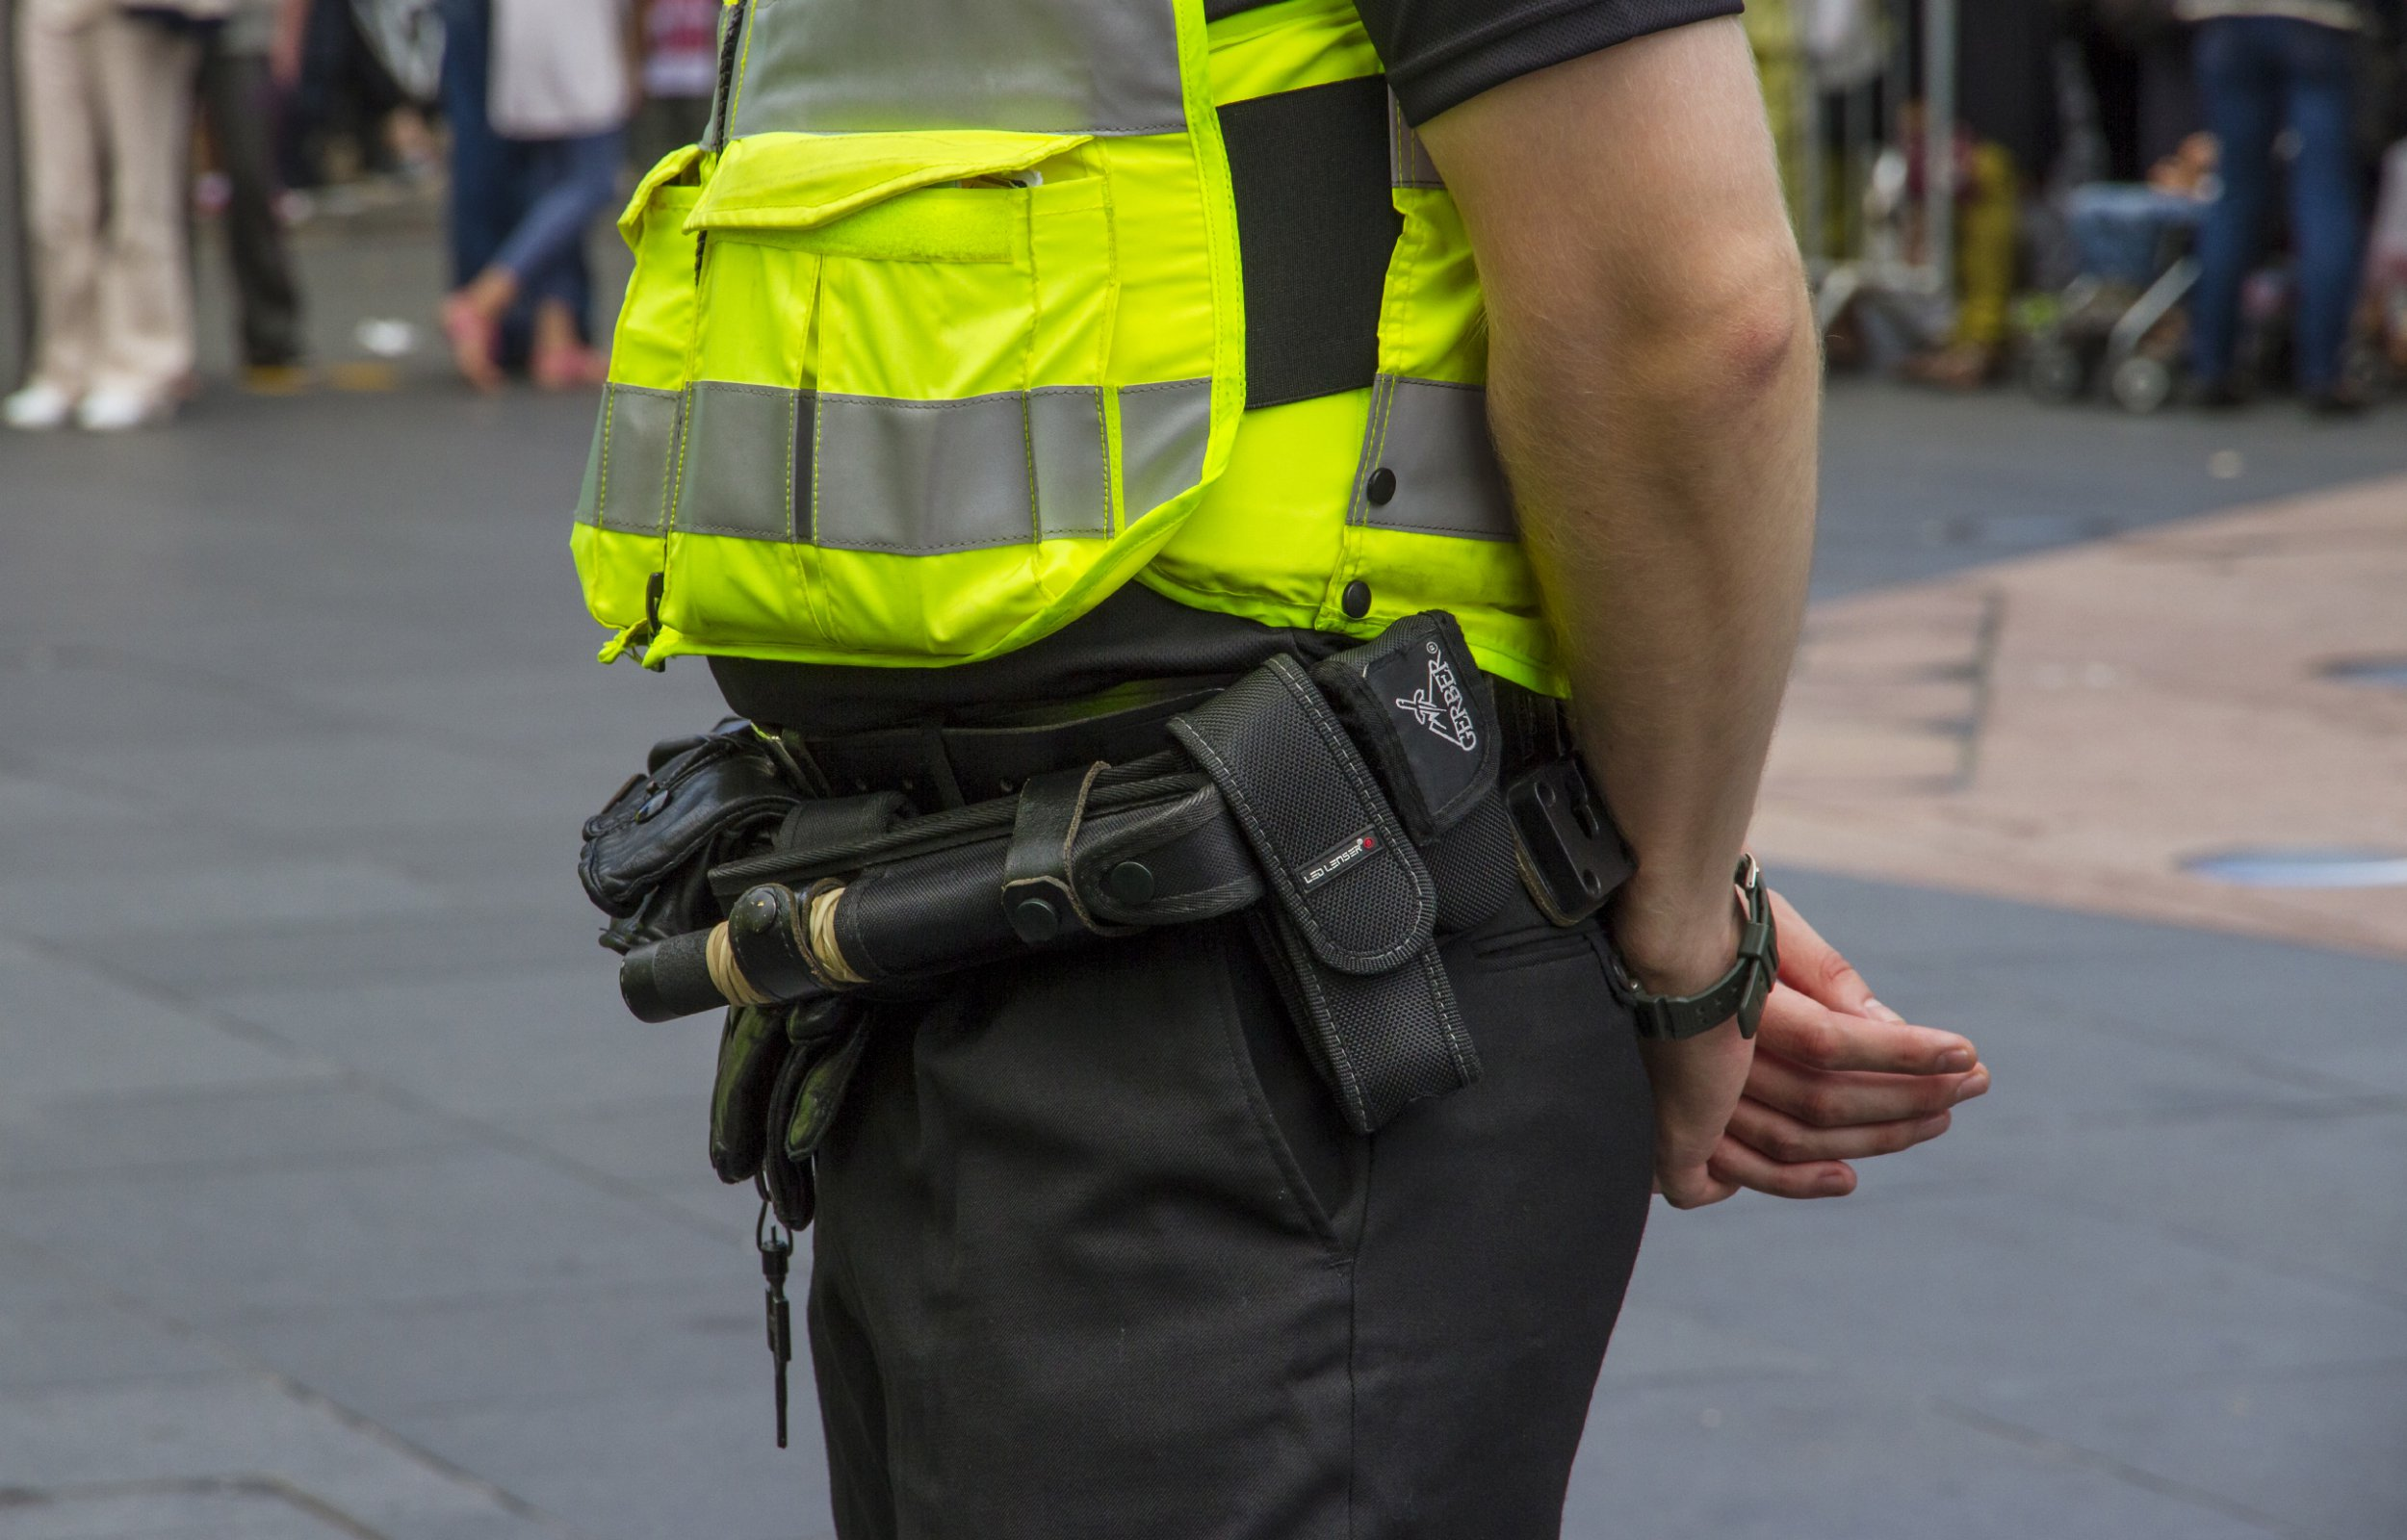 Close up of police officer showing the equipment they carry. (Photo by: Loop Images/UIG via Getty Images)